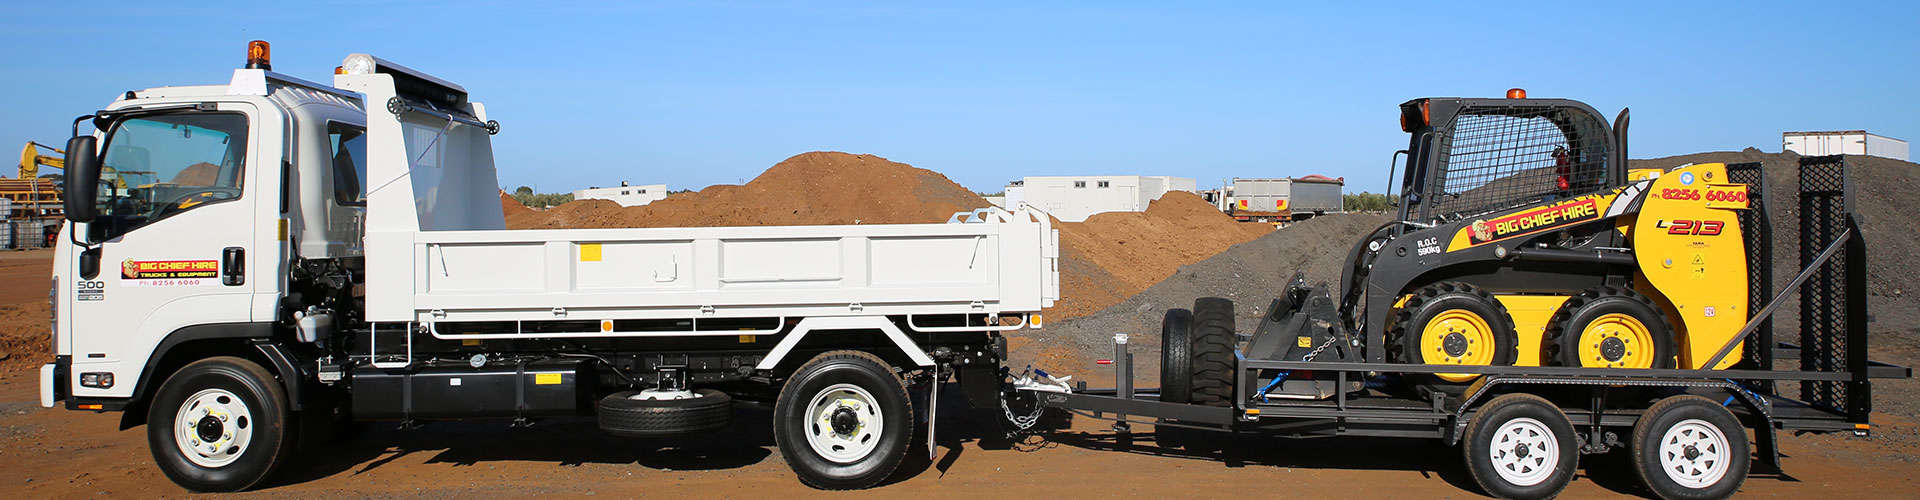 Tipper truck with skid steer on trailer